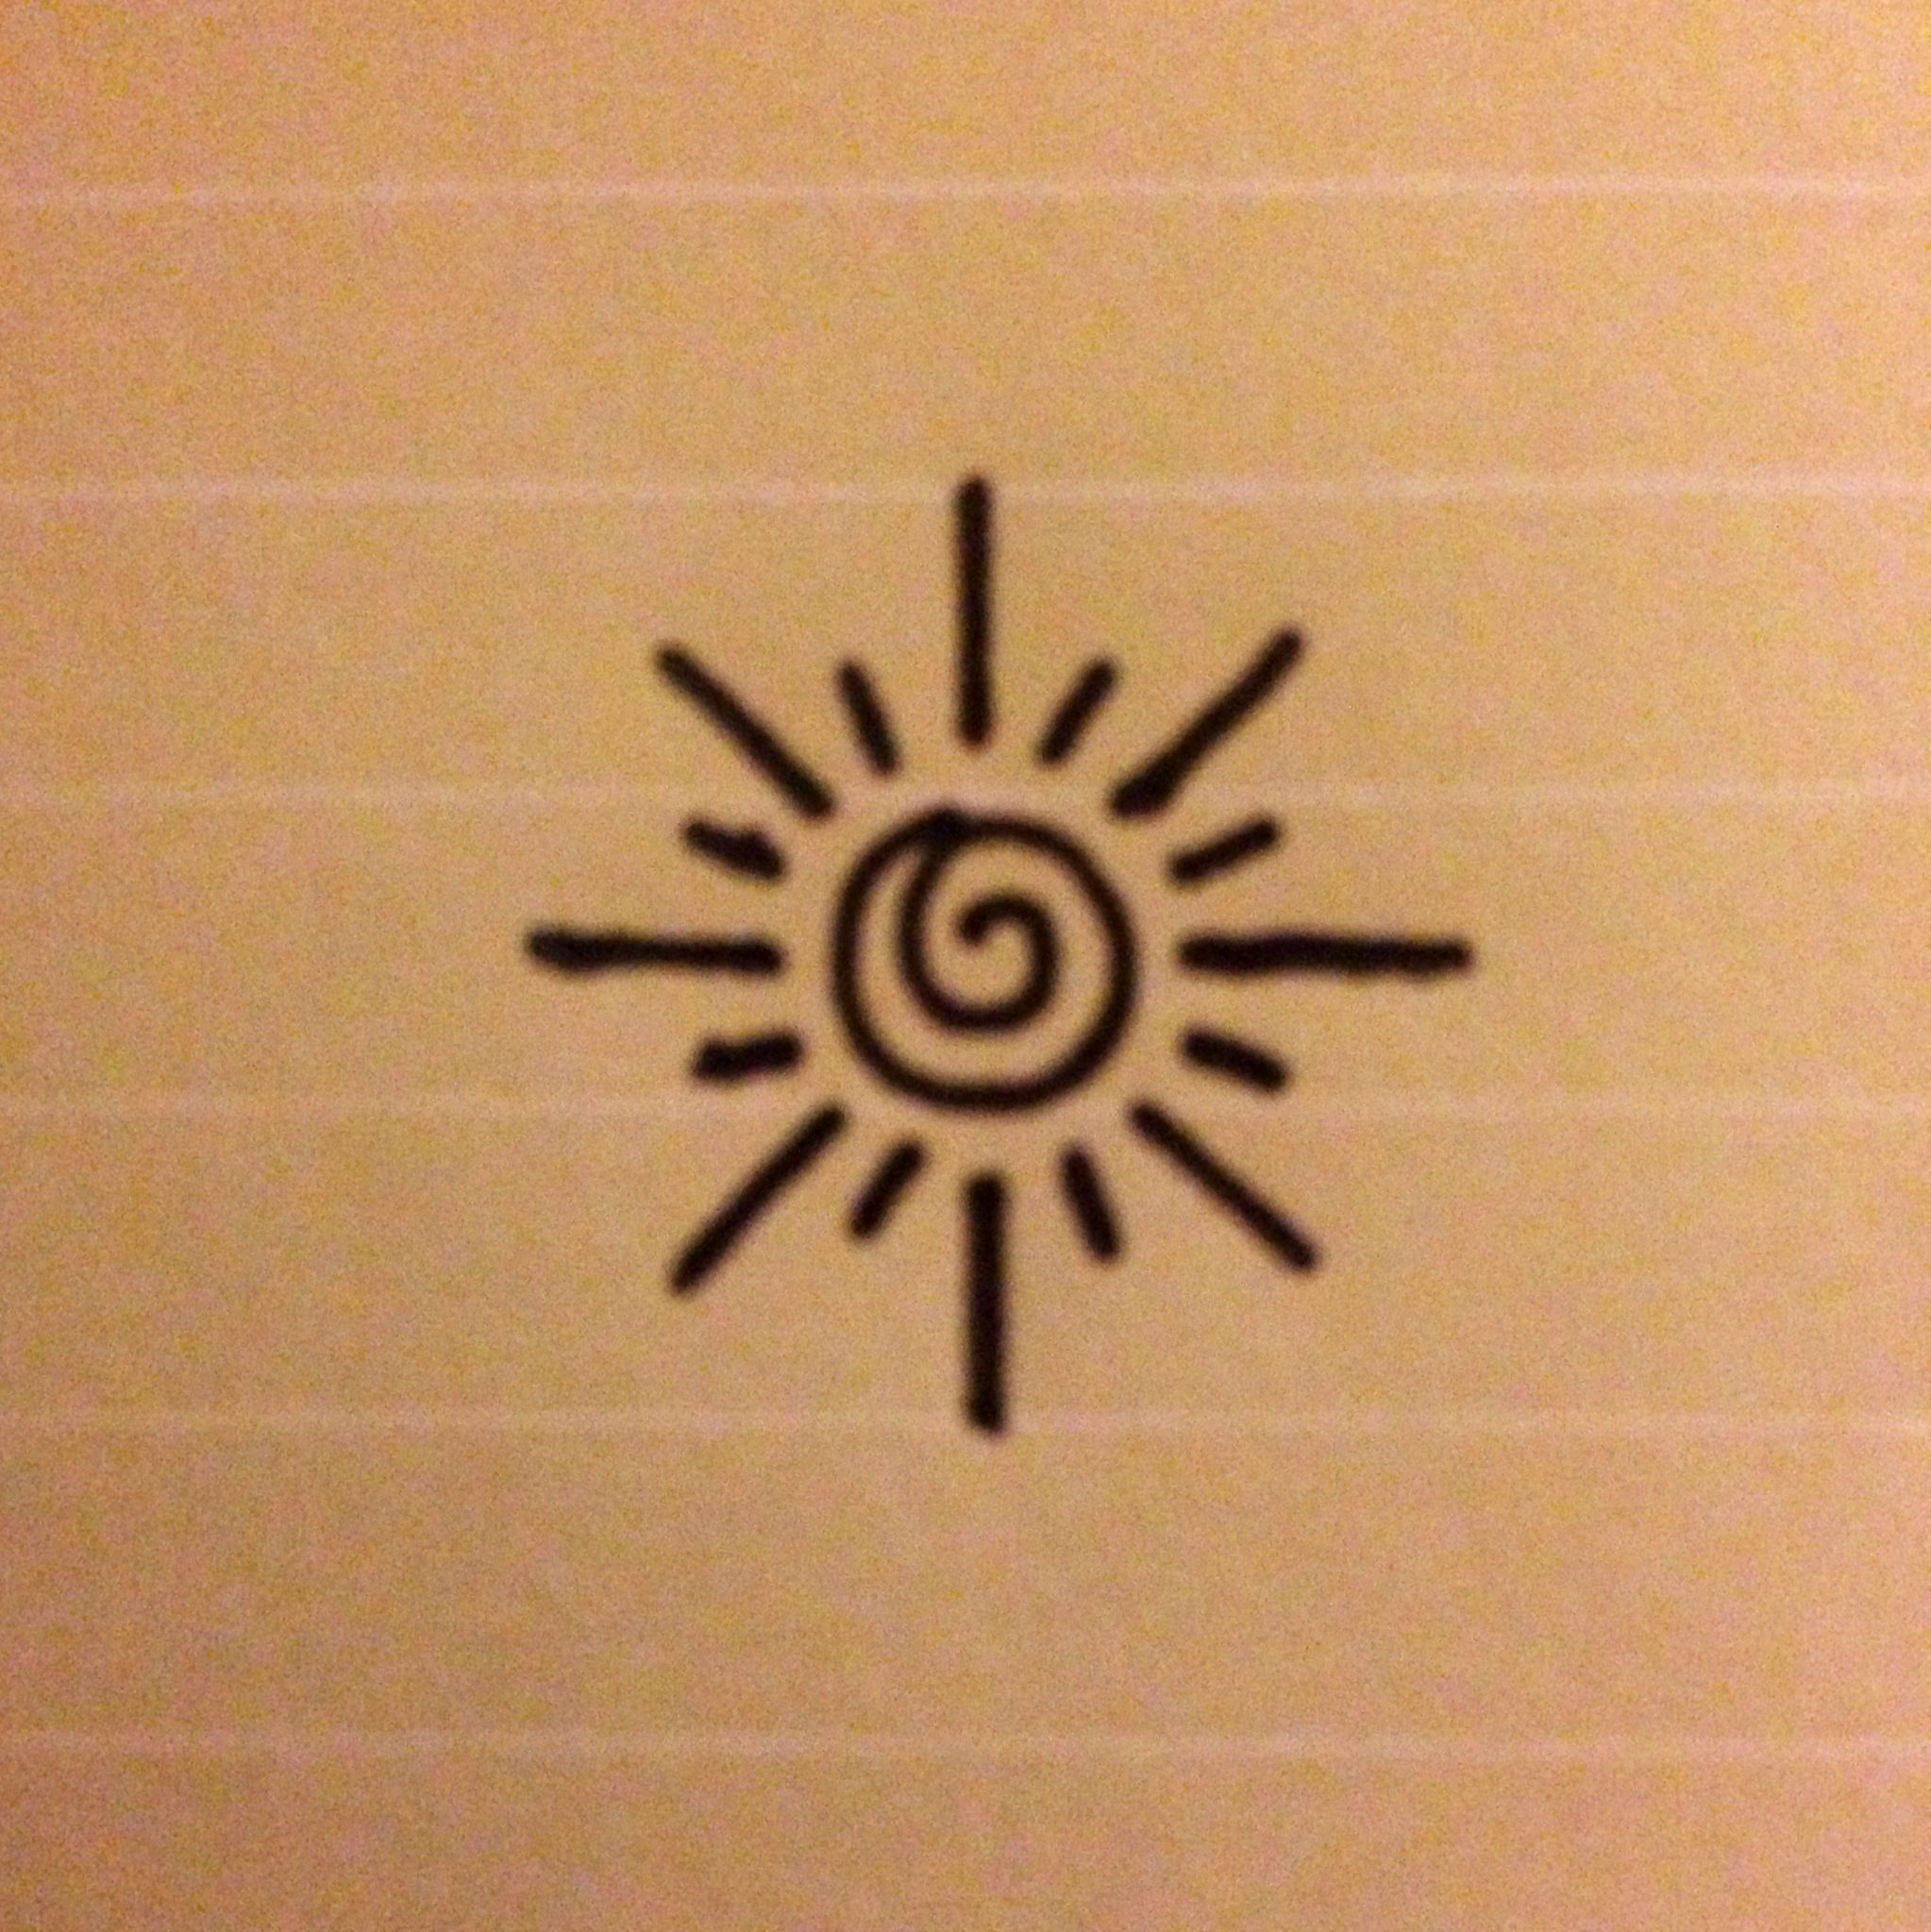 Top Small Sun Design Images for Pinterest Tattoos